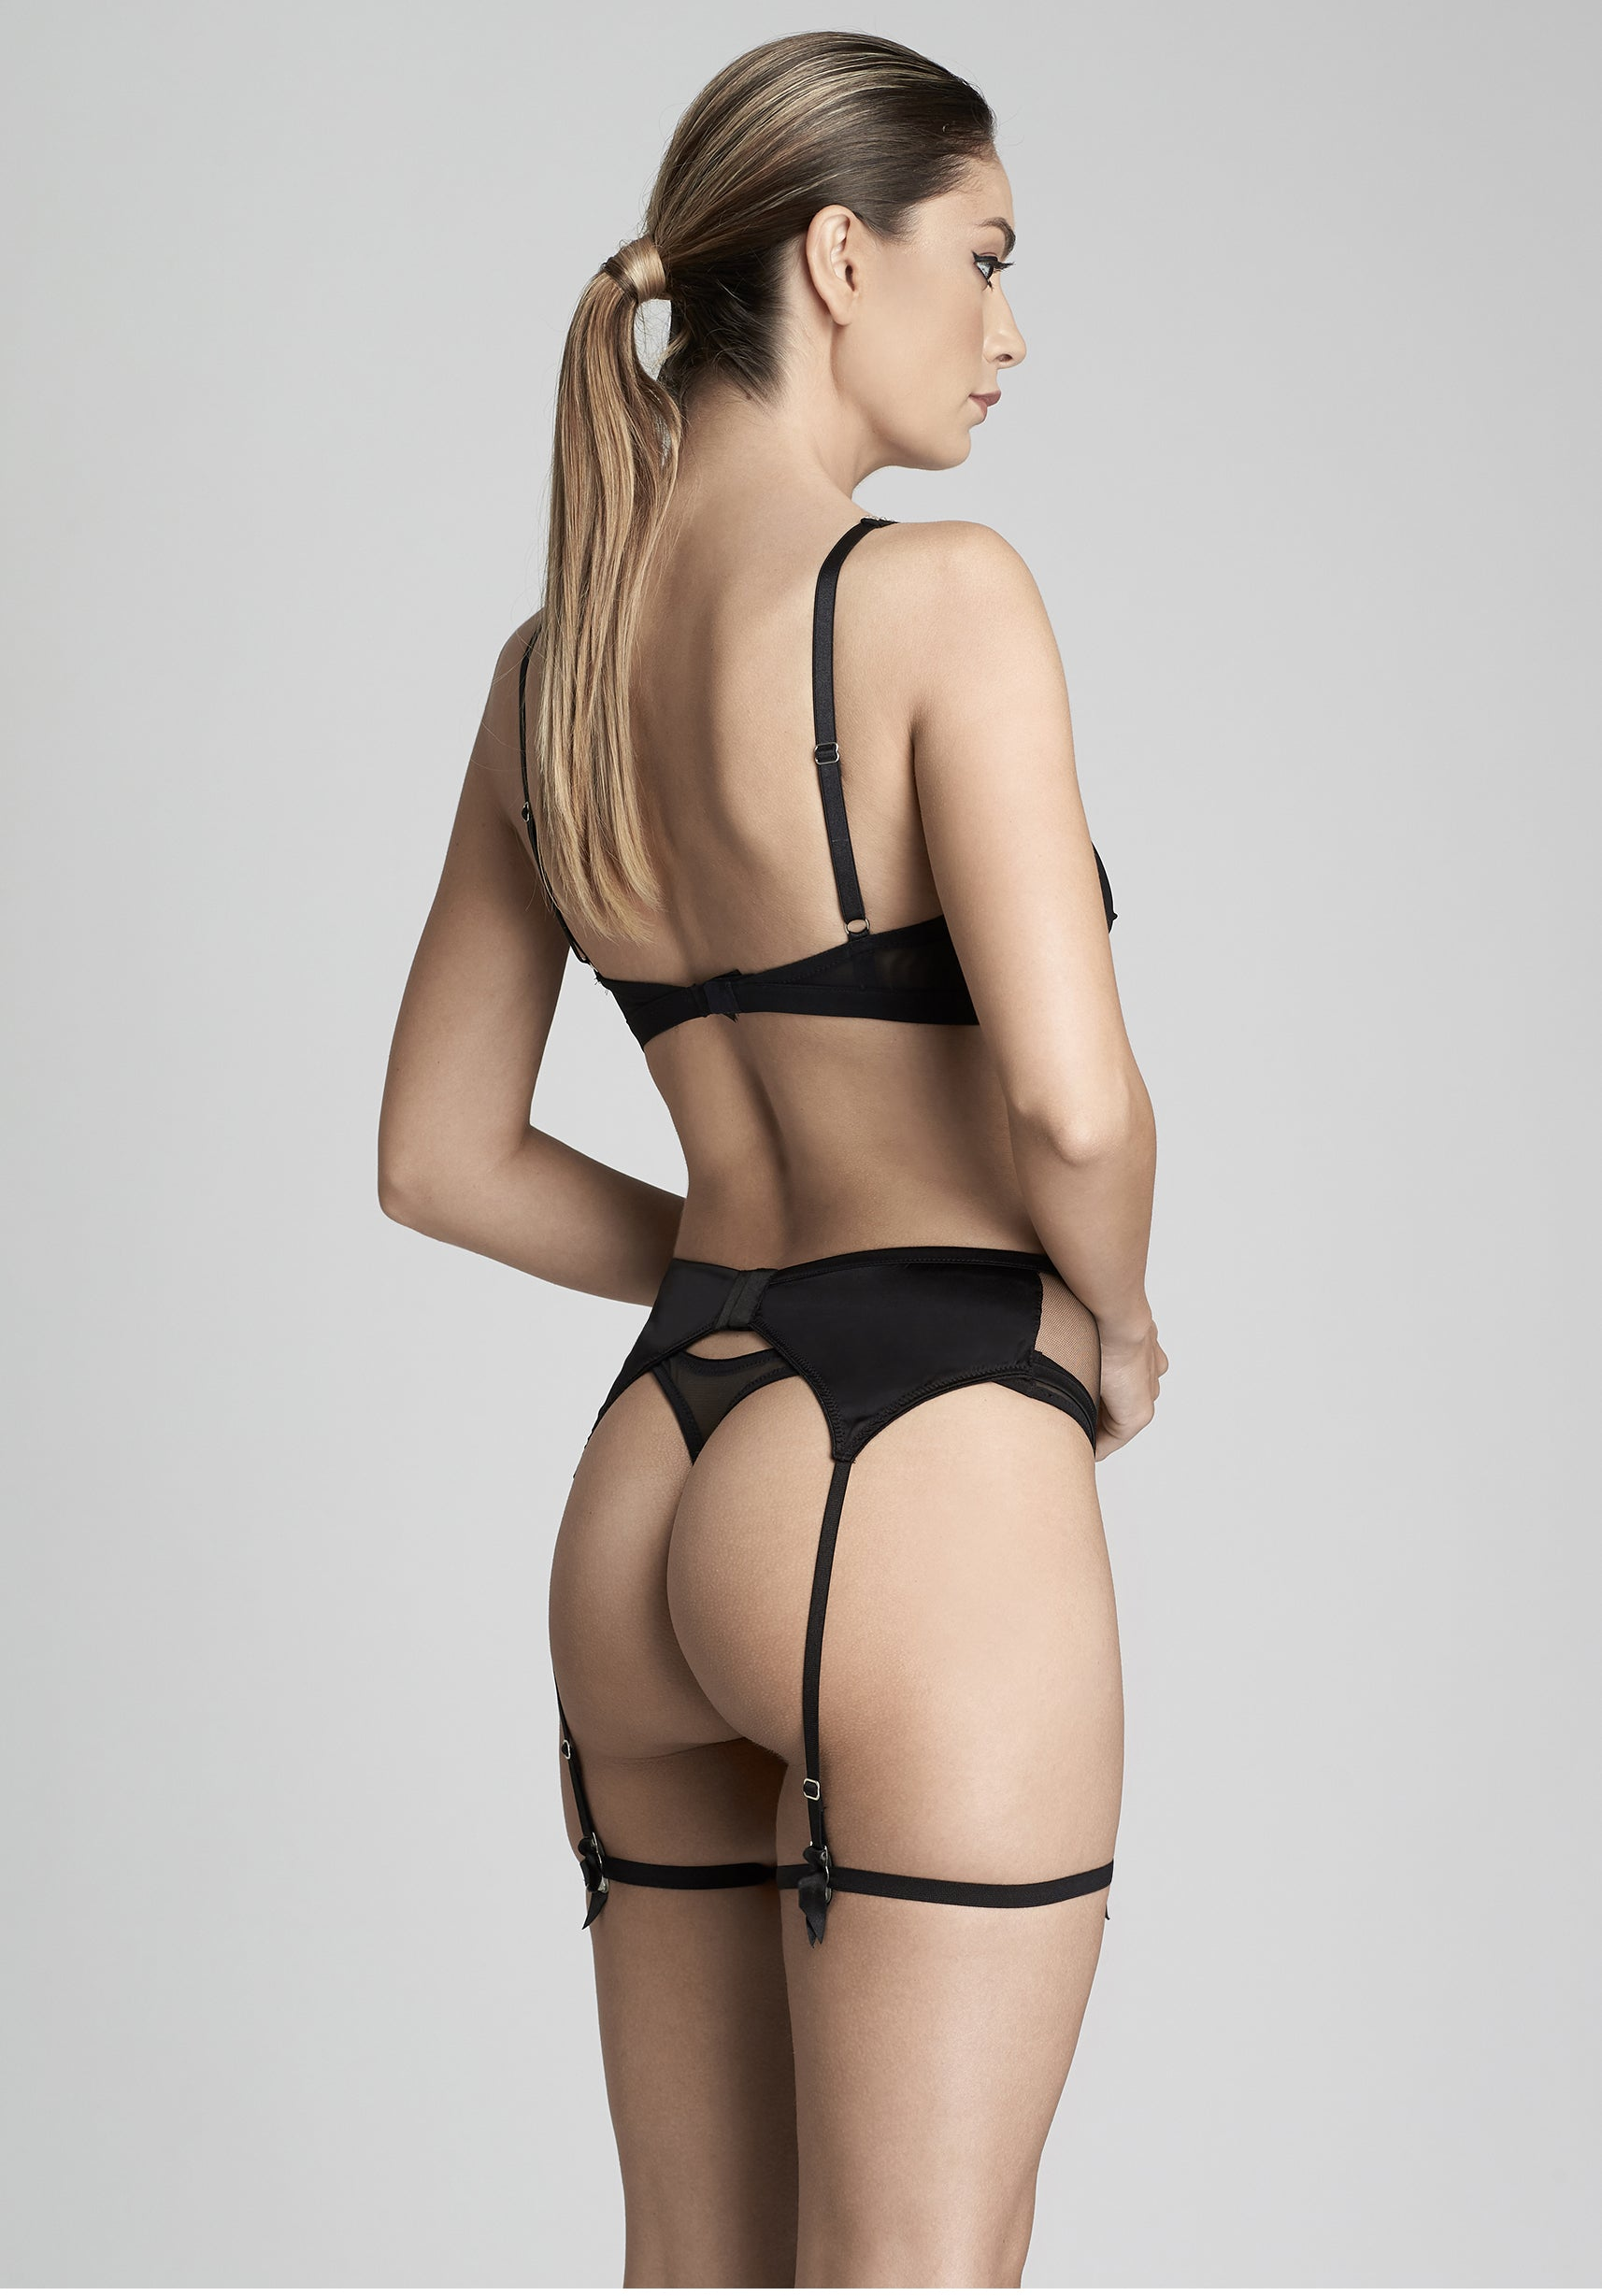 Nuit Interdit Thong with swarovski crystals in Black